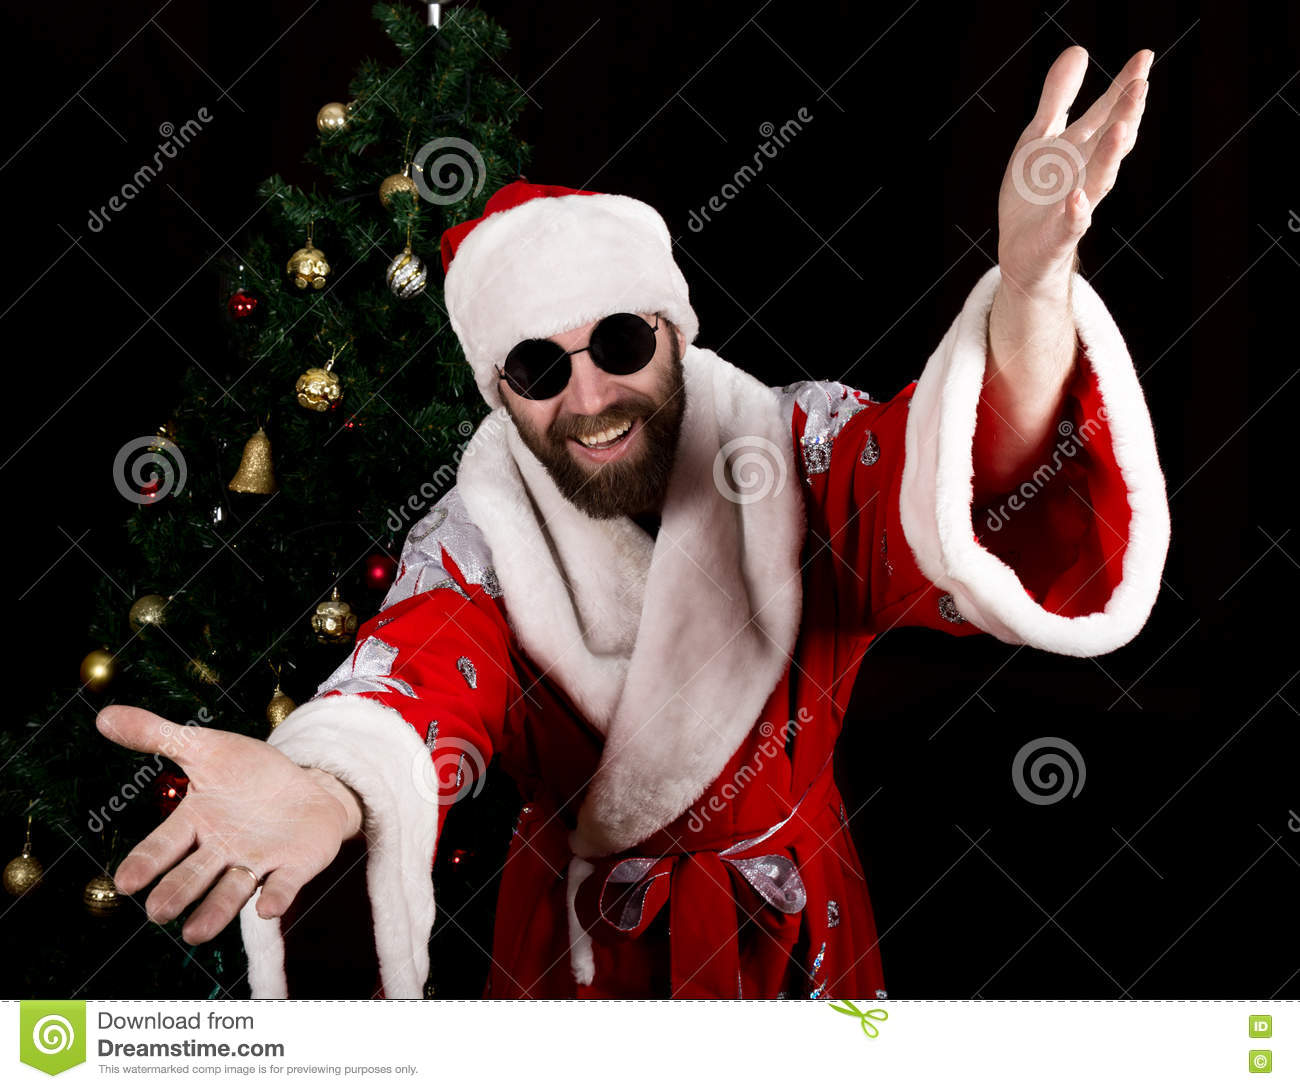 Bad rastoman Santa Claus smiles and spread his hands in different side on the background of Christmas tree